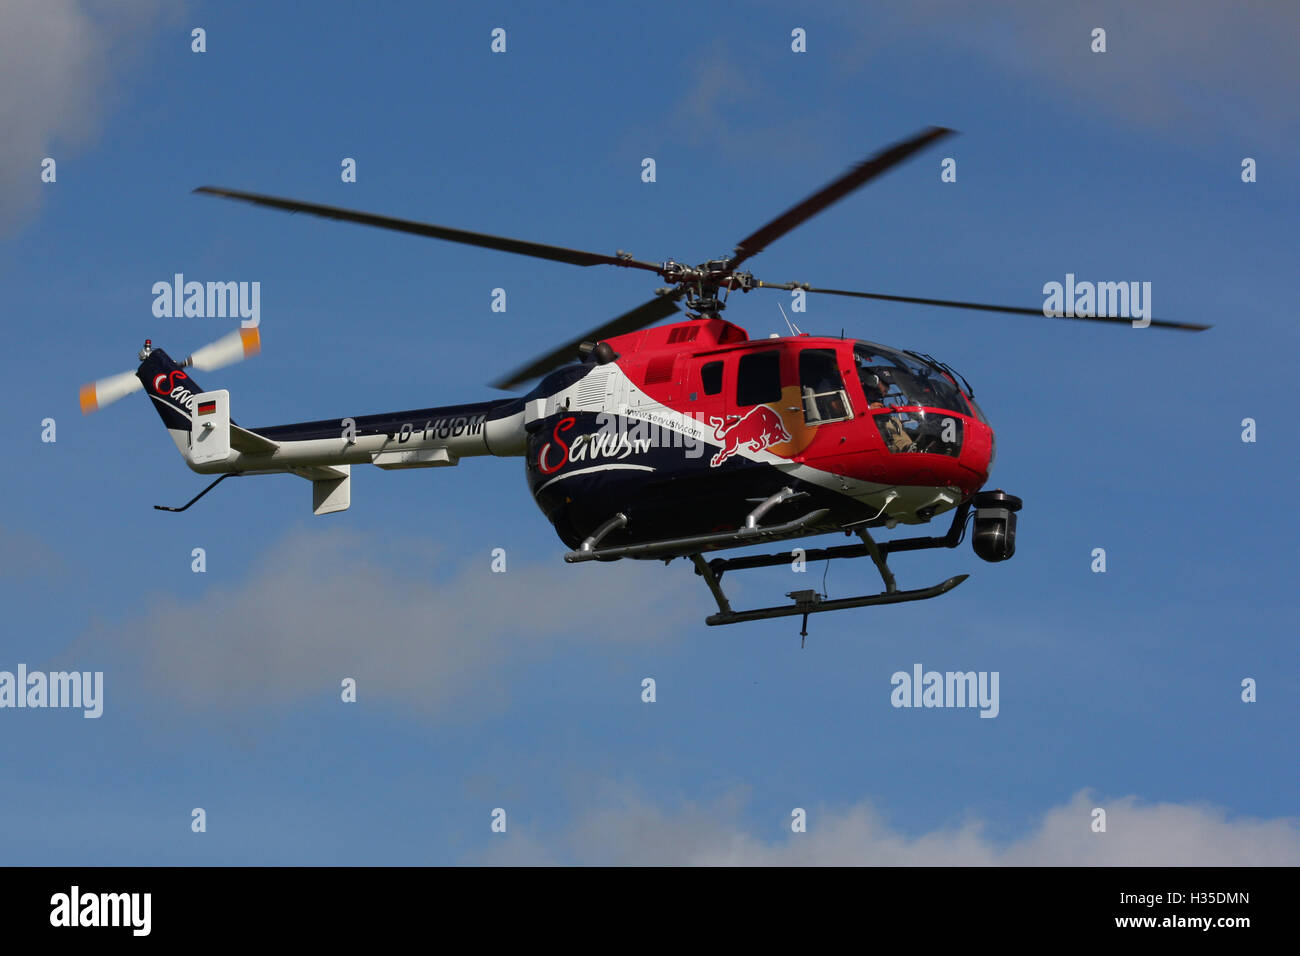 RED BULL BO 105 - Stock Image